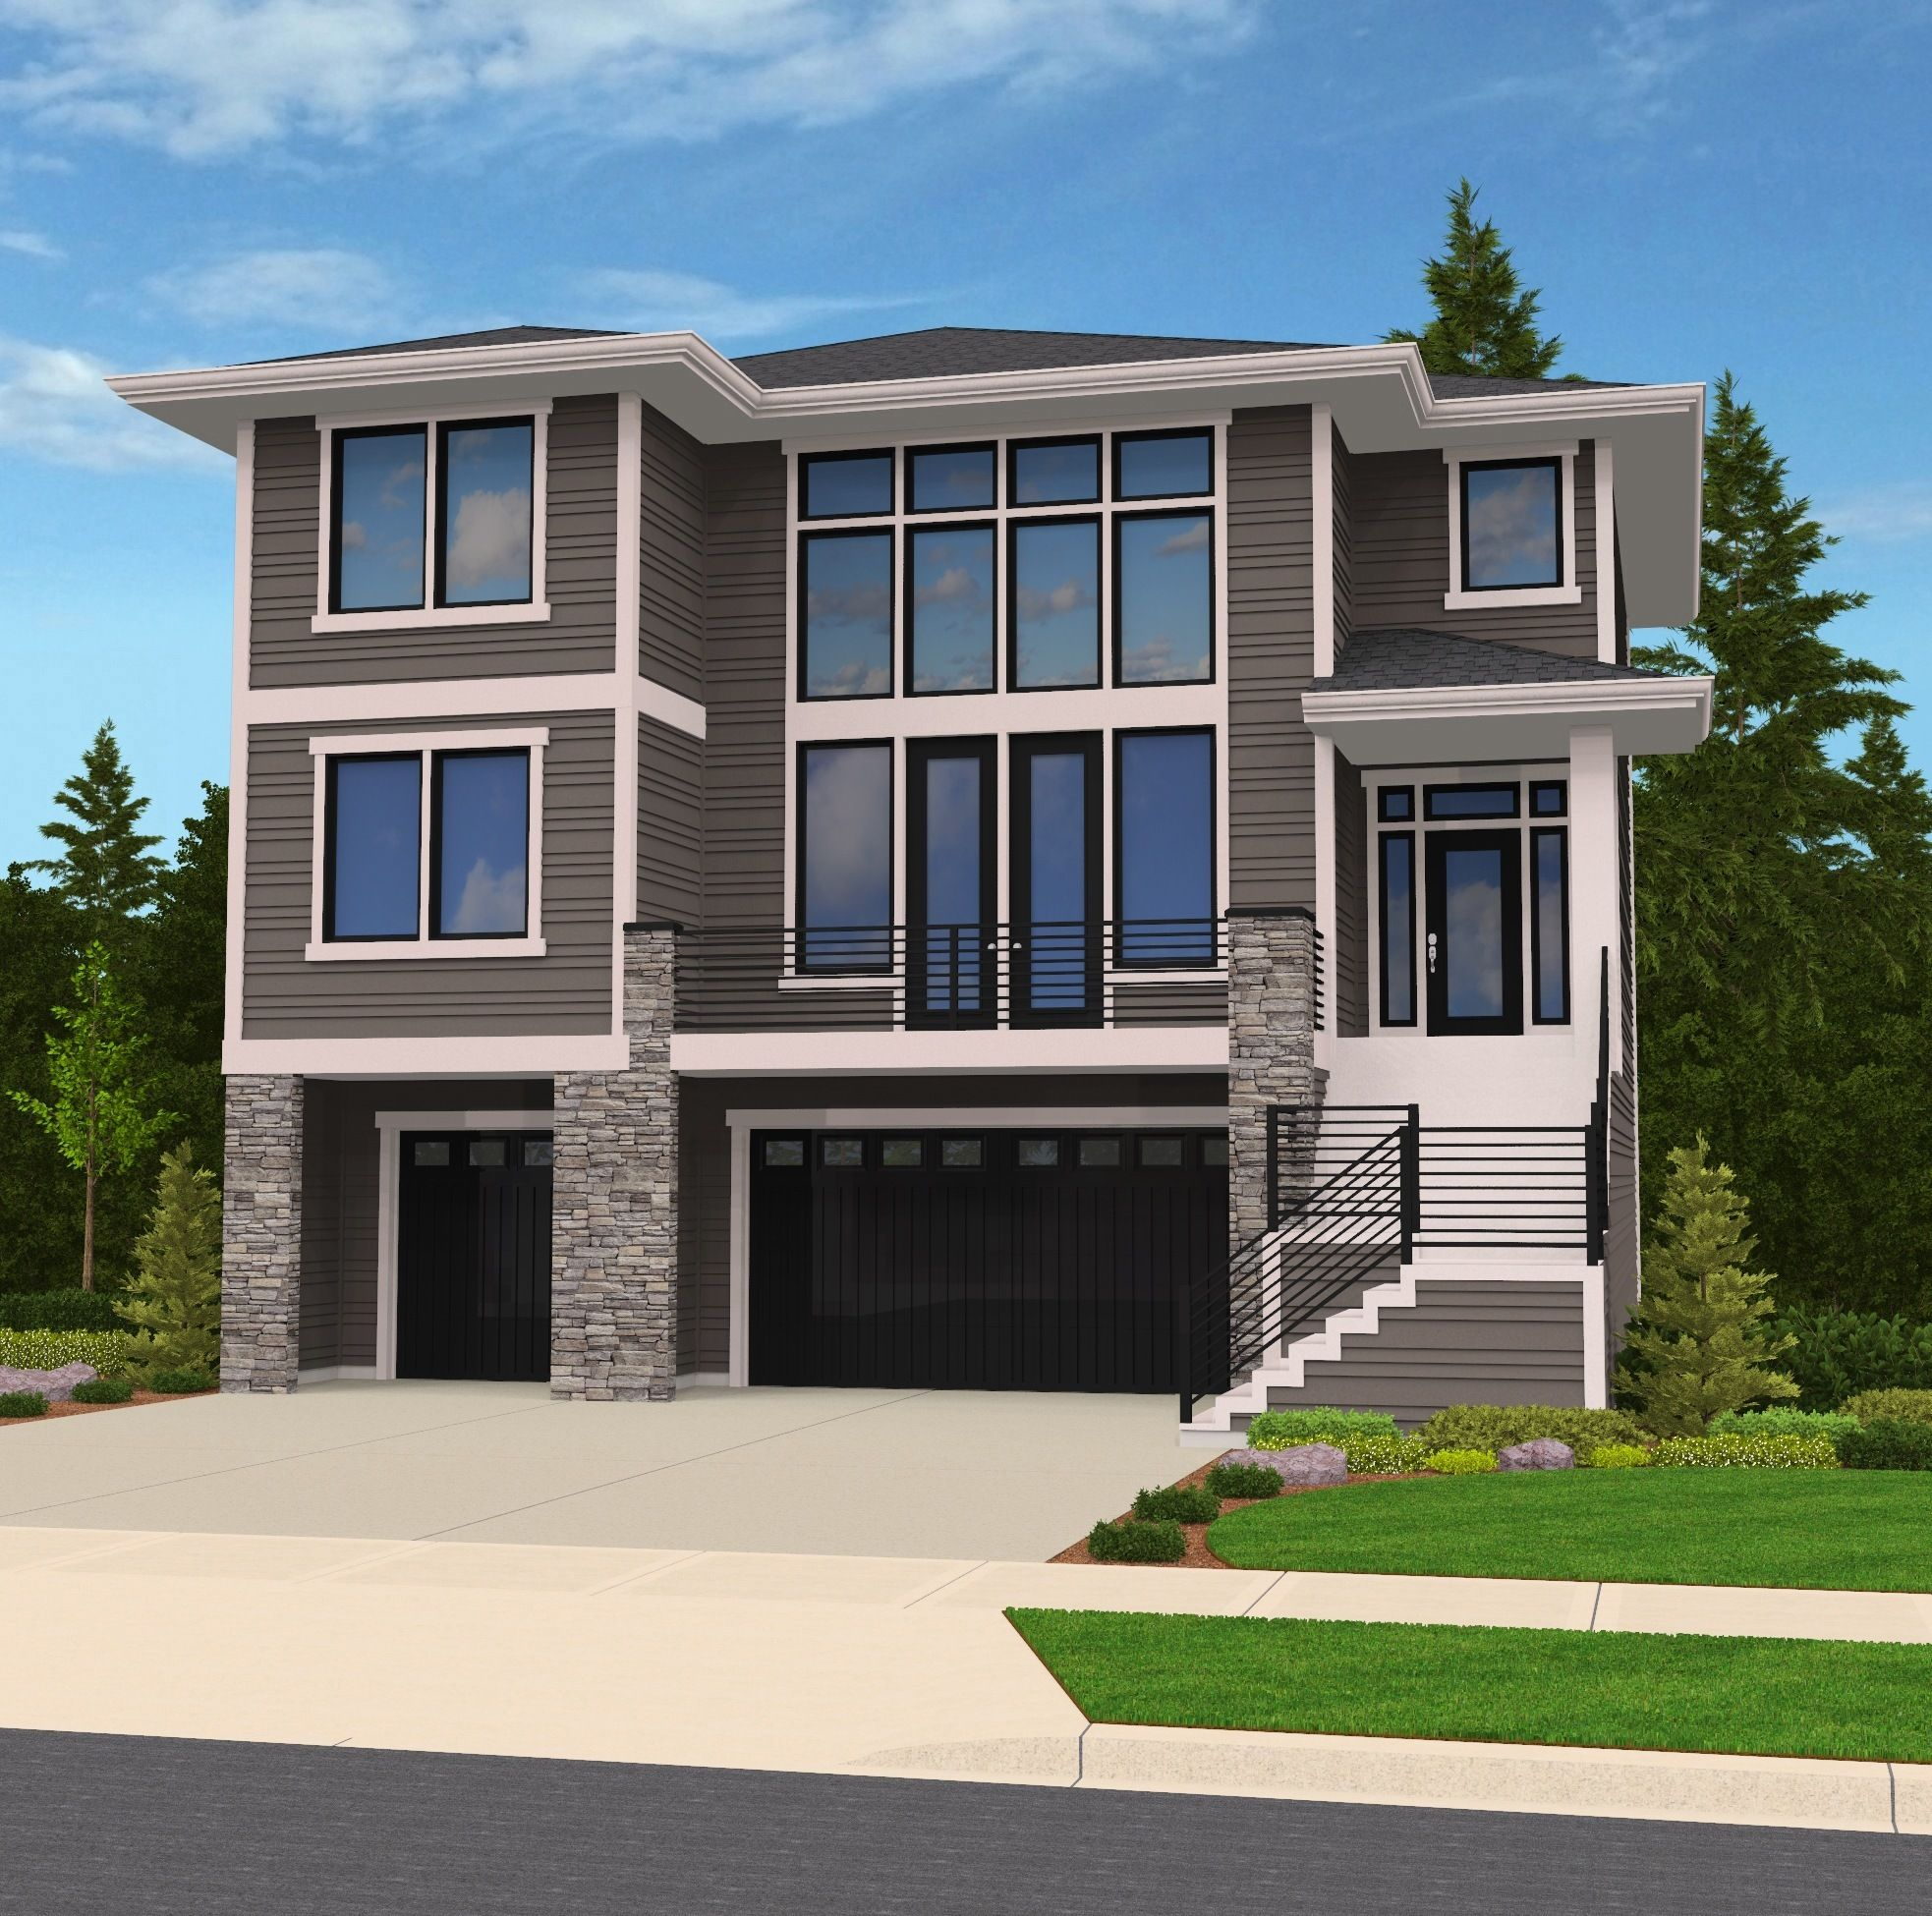 Hillside Modern Contemporary House Plan By Mark Stewart Modern House Plans Contemporary House Plans Modern Contemporary House Plans